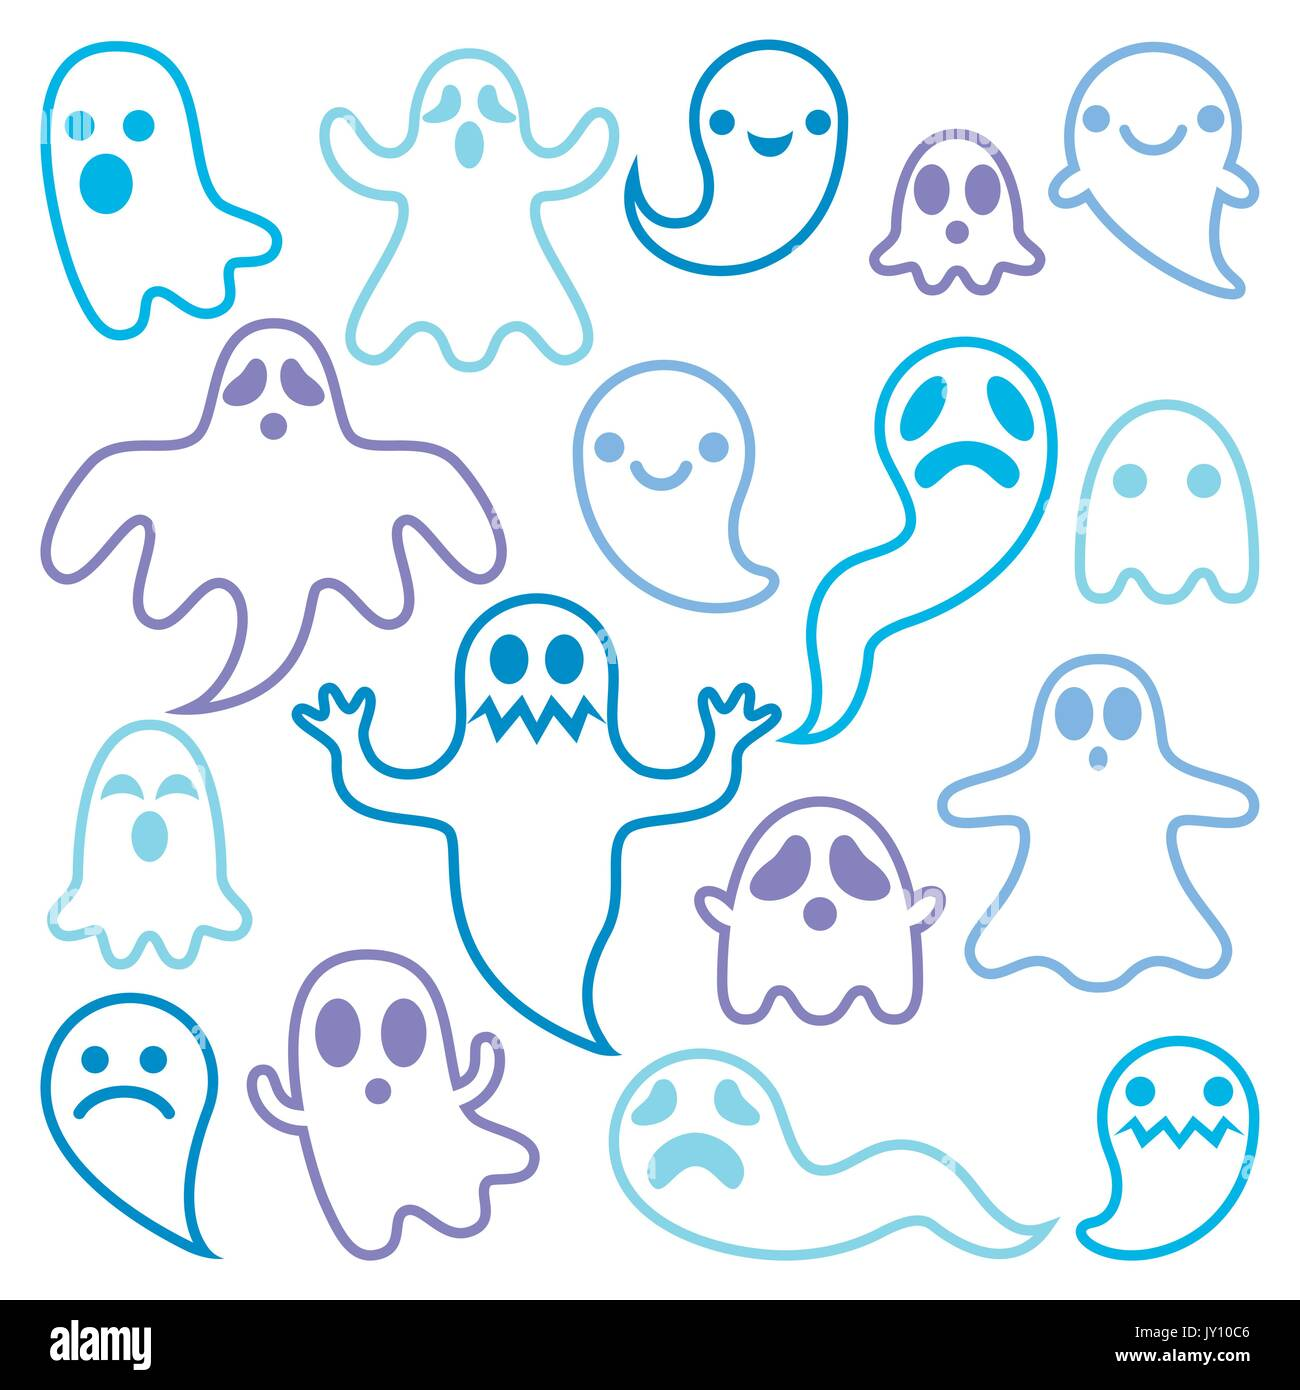 Scary ghosts design, Halloween characters icons set Vector icons ...